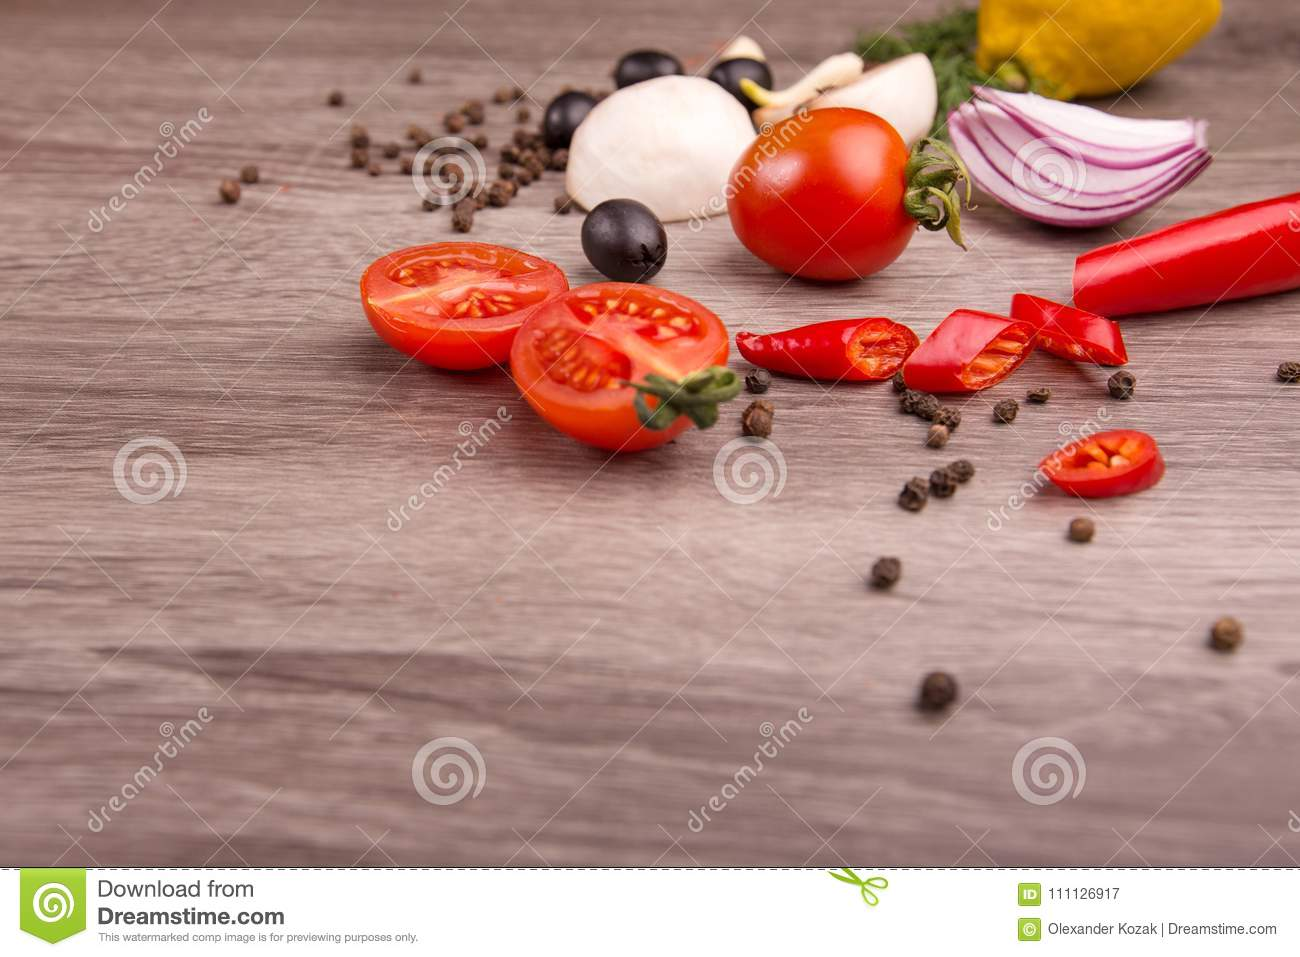 Healthy food background / studio photo of different fruits and vegetables on wooden table.